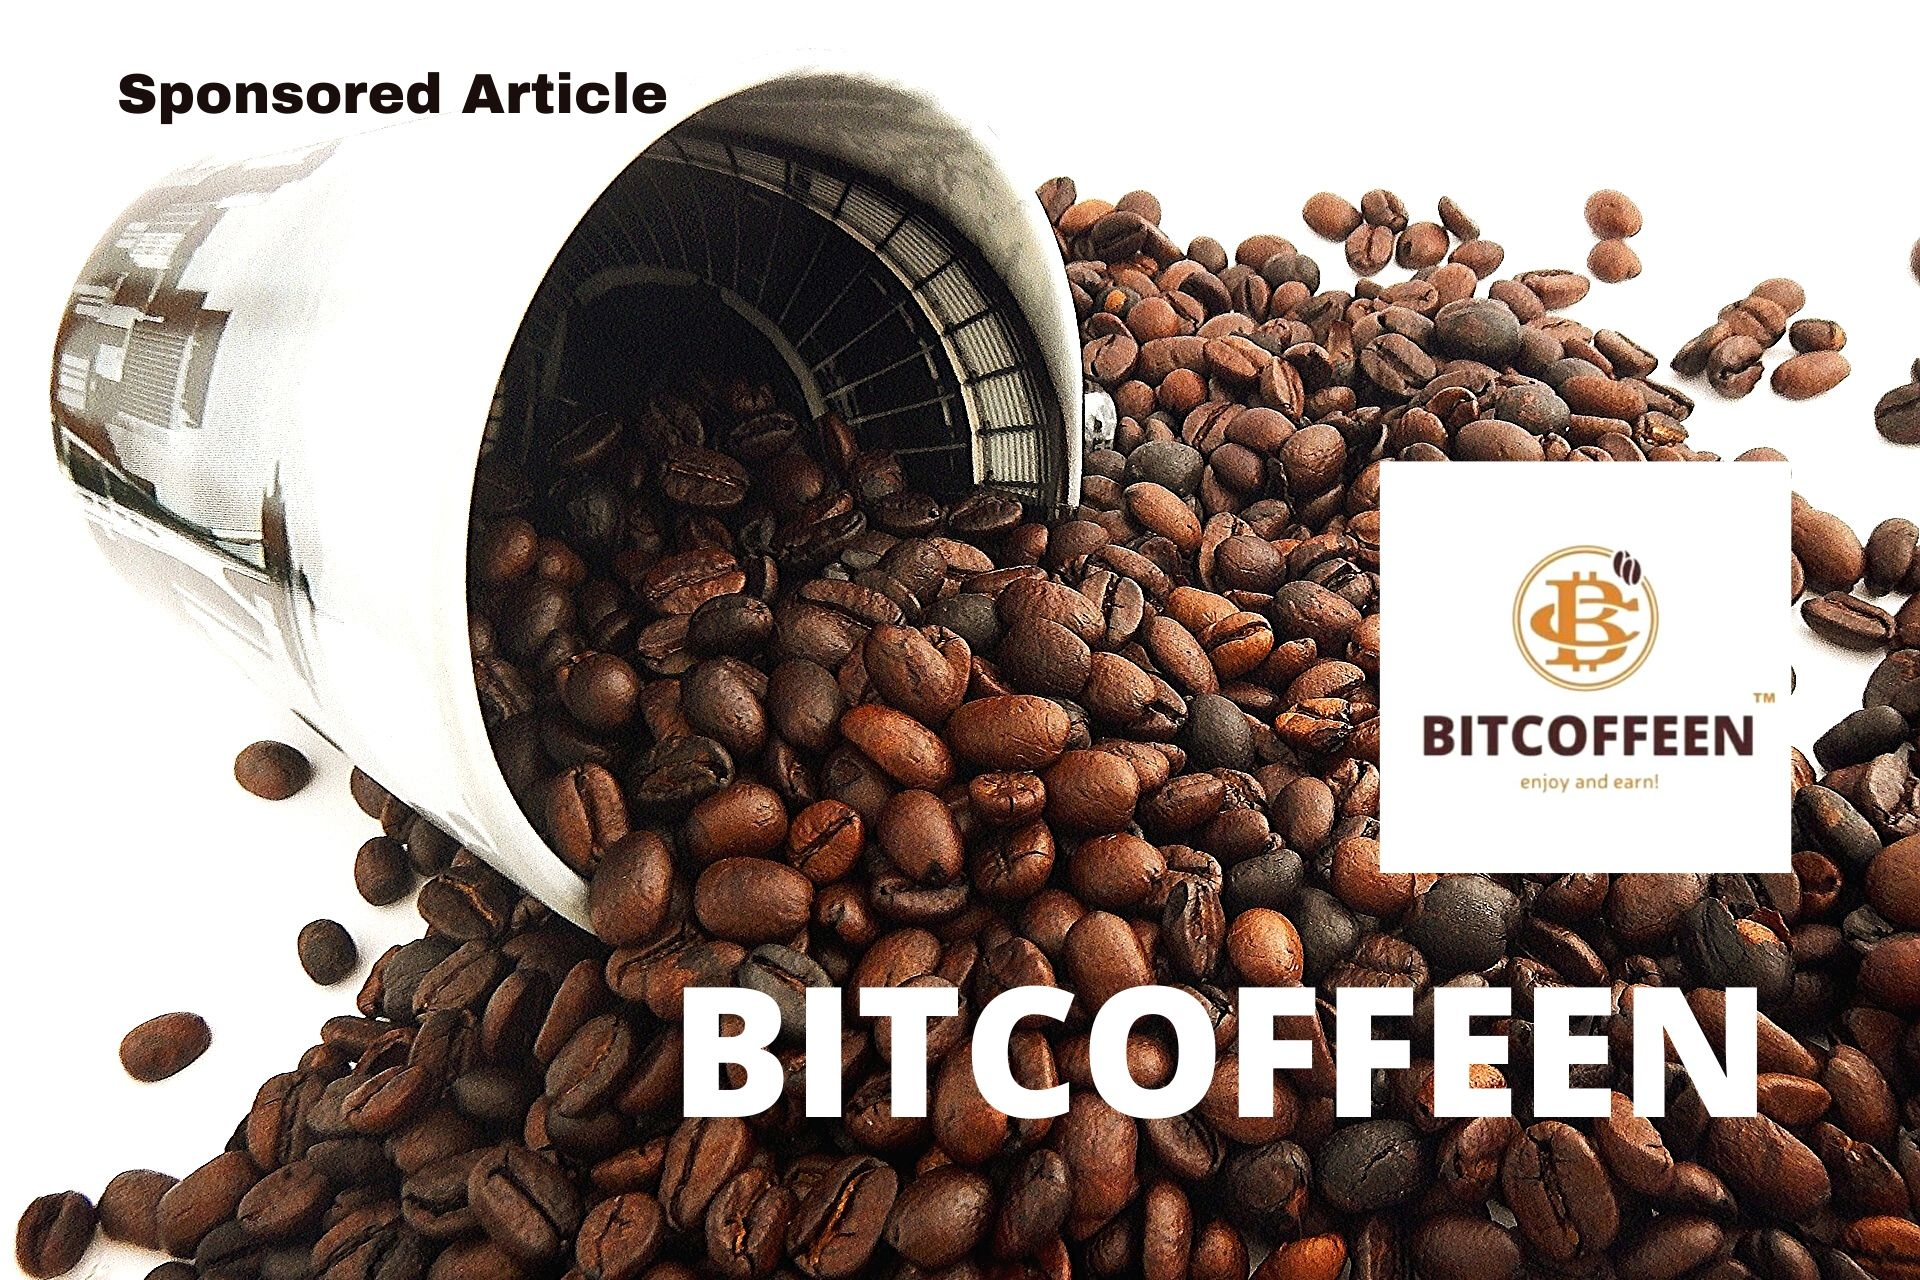 BITCOFFEEN: Bringing A Cryptocurrency Twist To Satisfy Your Caffeine Needs 4